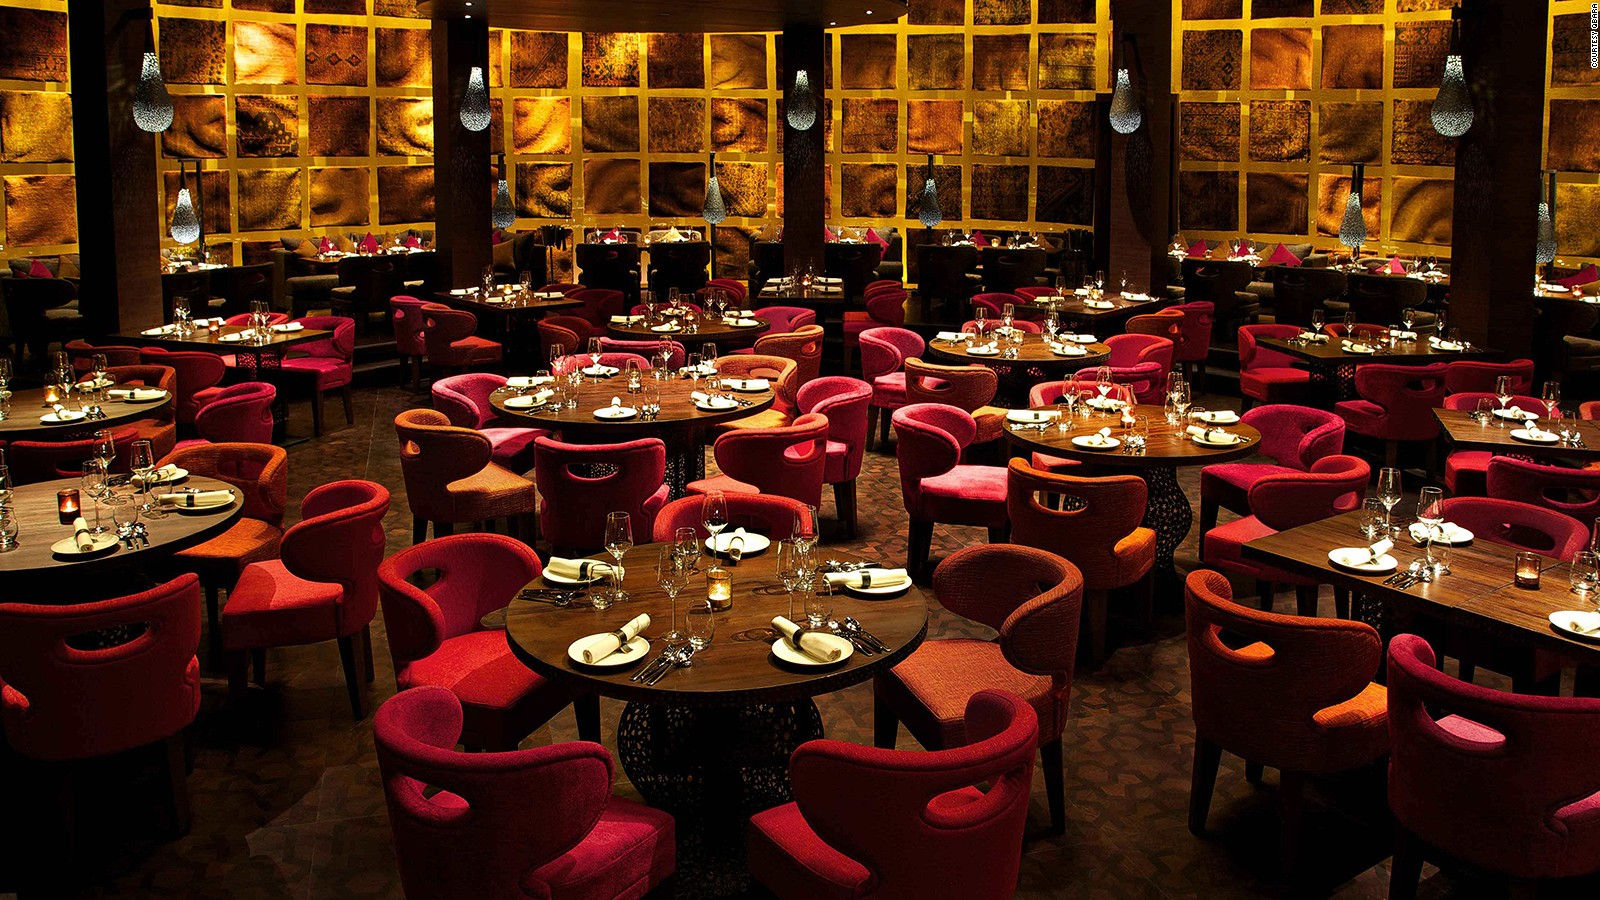 dubai's 10 most decadent restaurants | cnn travel